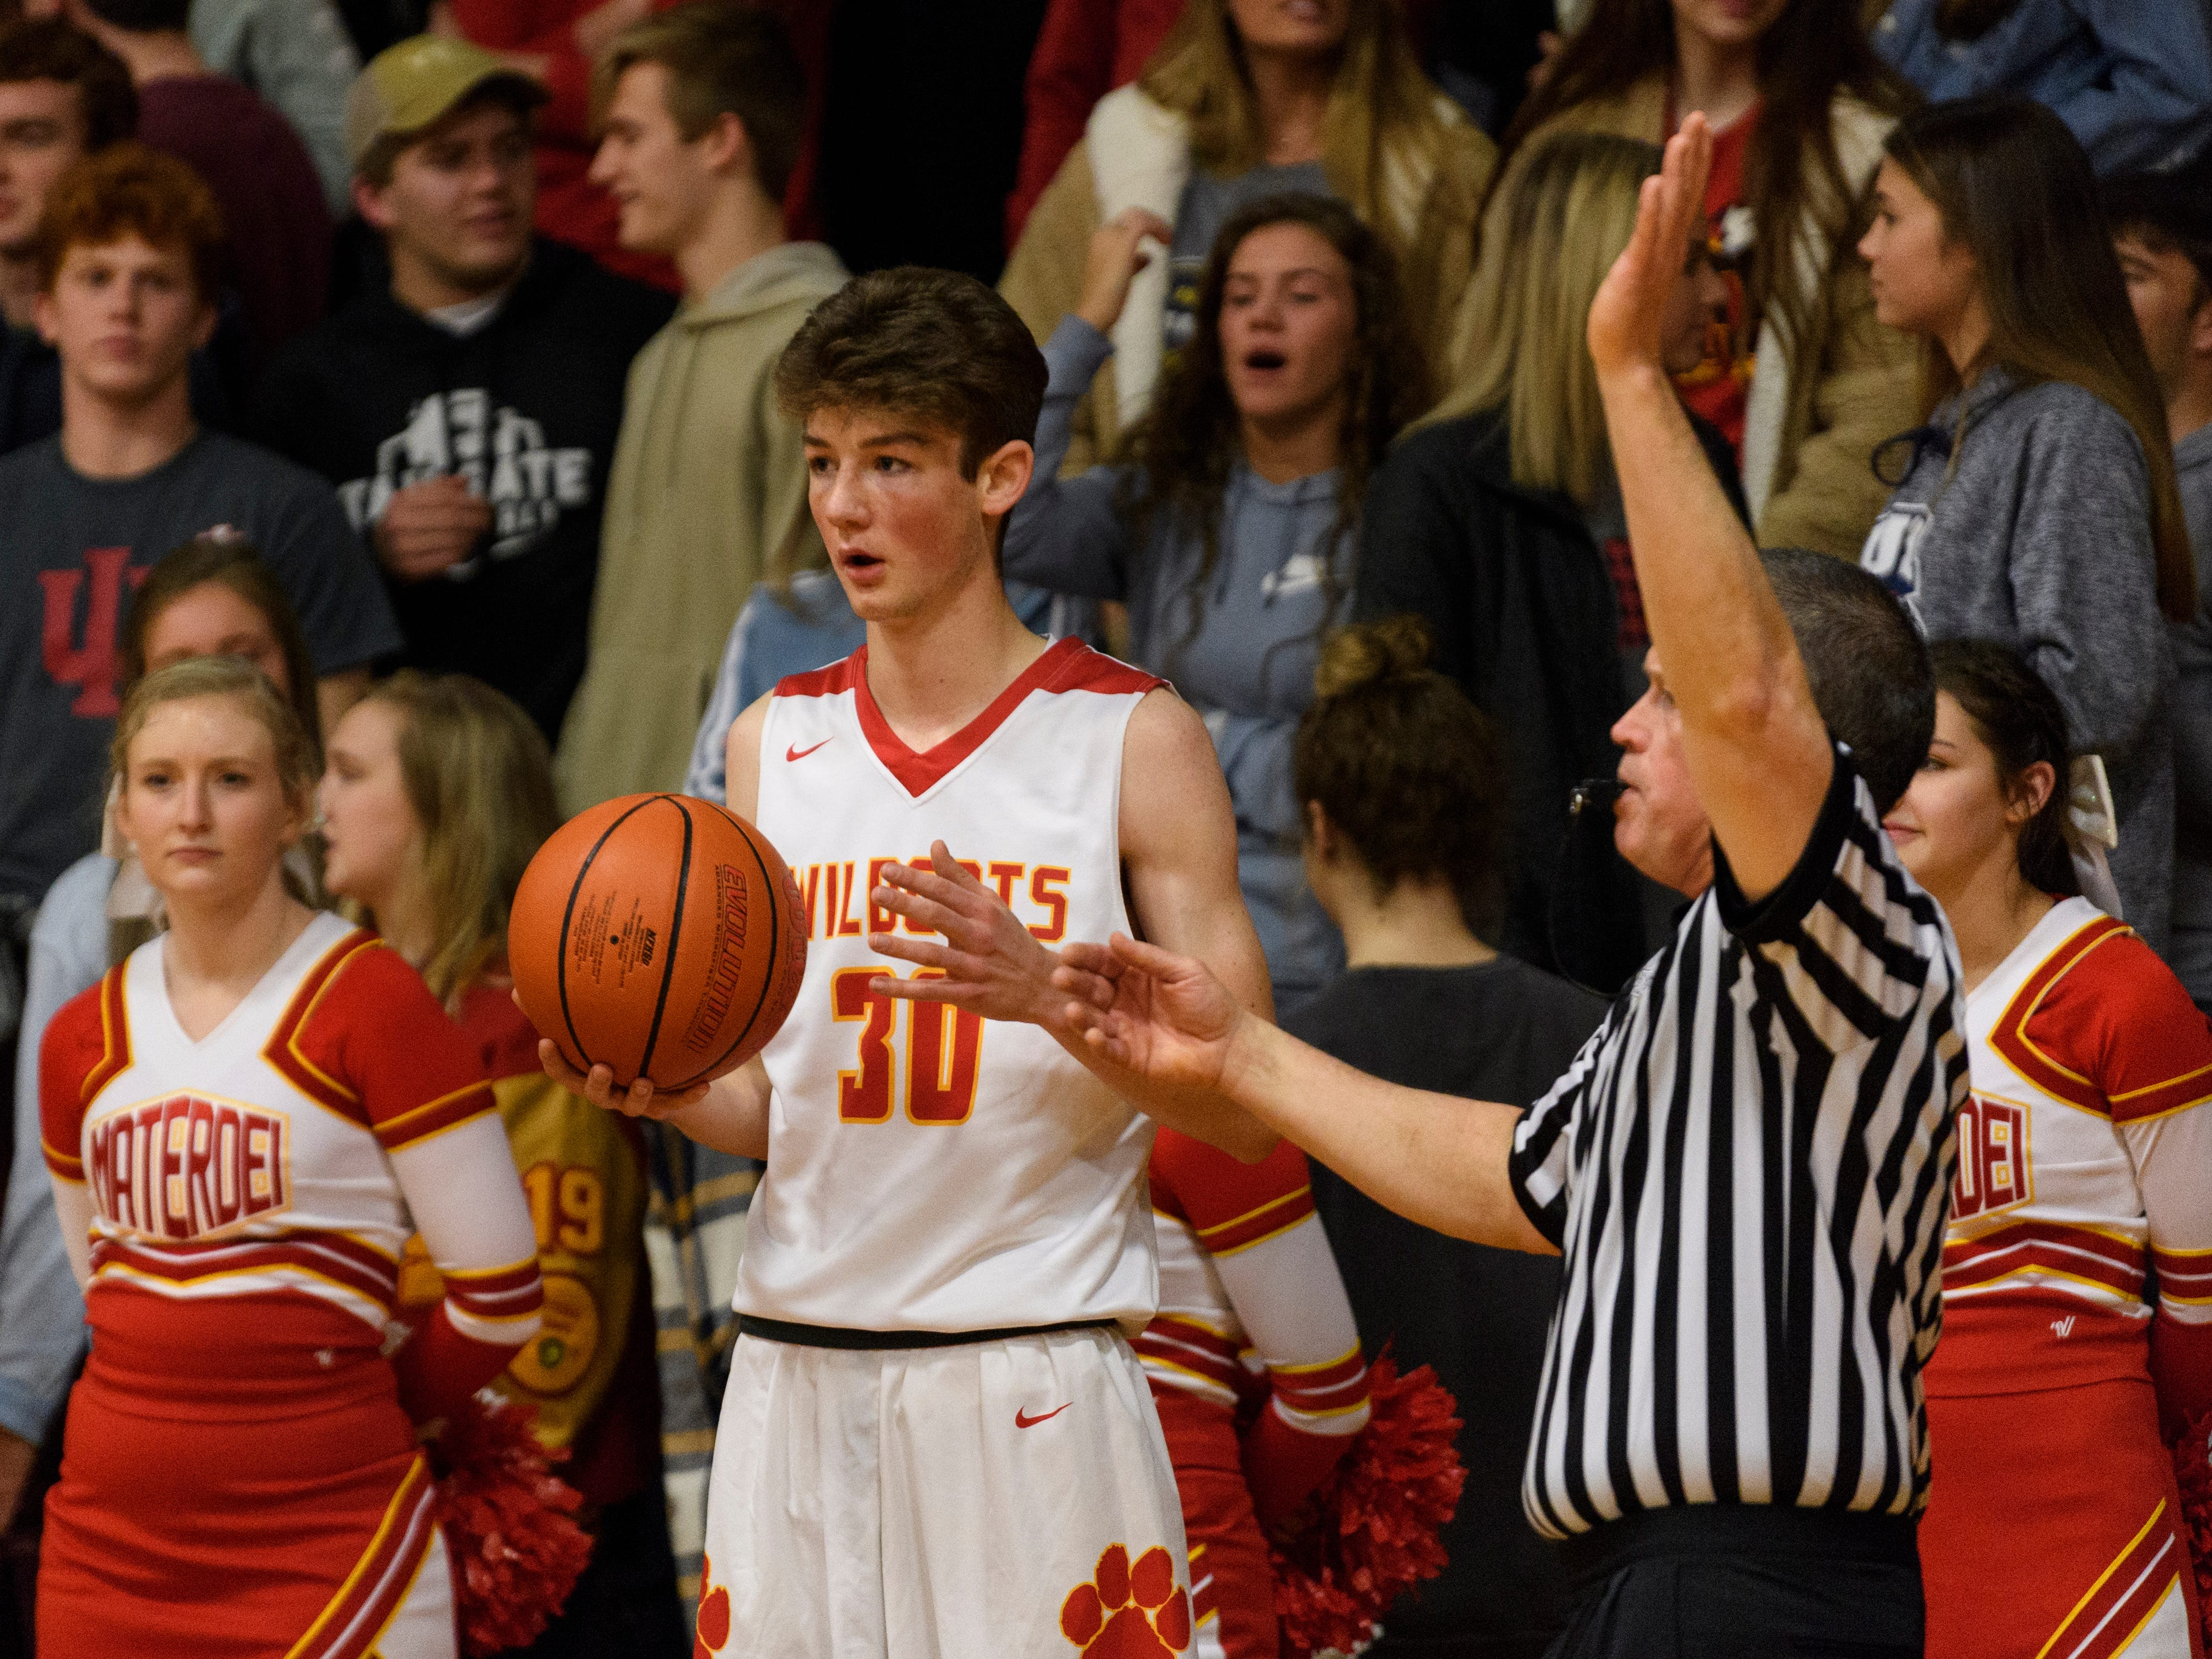 Mater Dei's Zach Schoenstien (30) prepares to throw the ball into play during the second quarter against the Boonville Pioneers at Mater Dei High School in Evansville, Ind., Saturday, Jan. 5, 2019. The Wildcats defeated the Pioneers, 93-65.